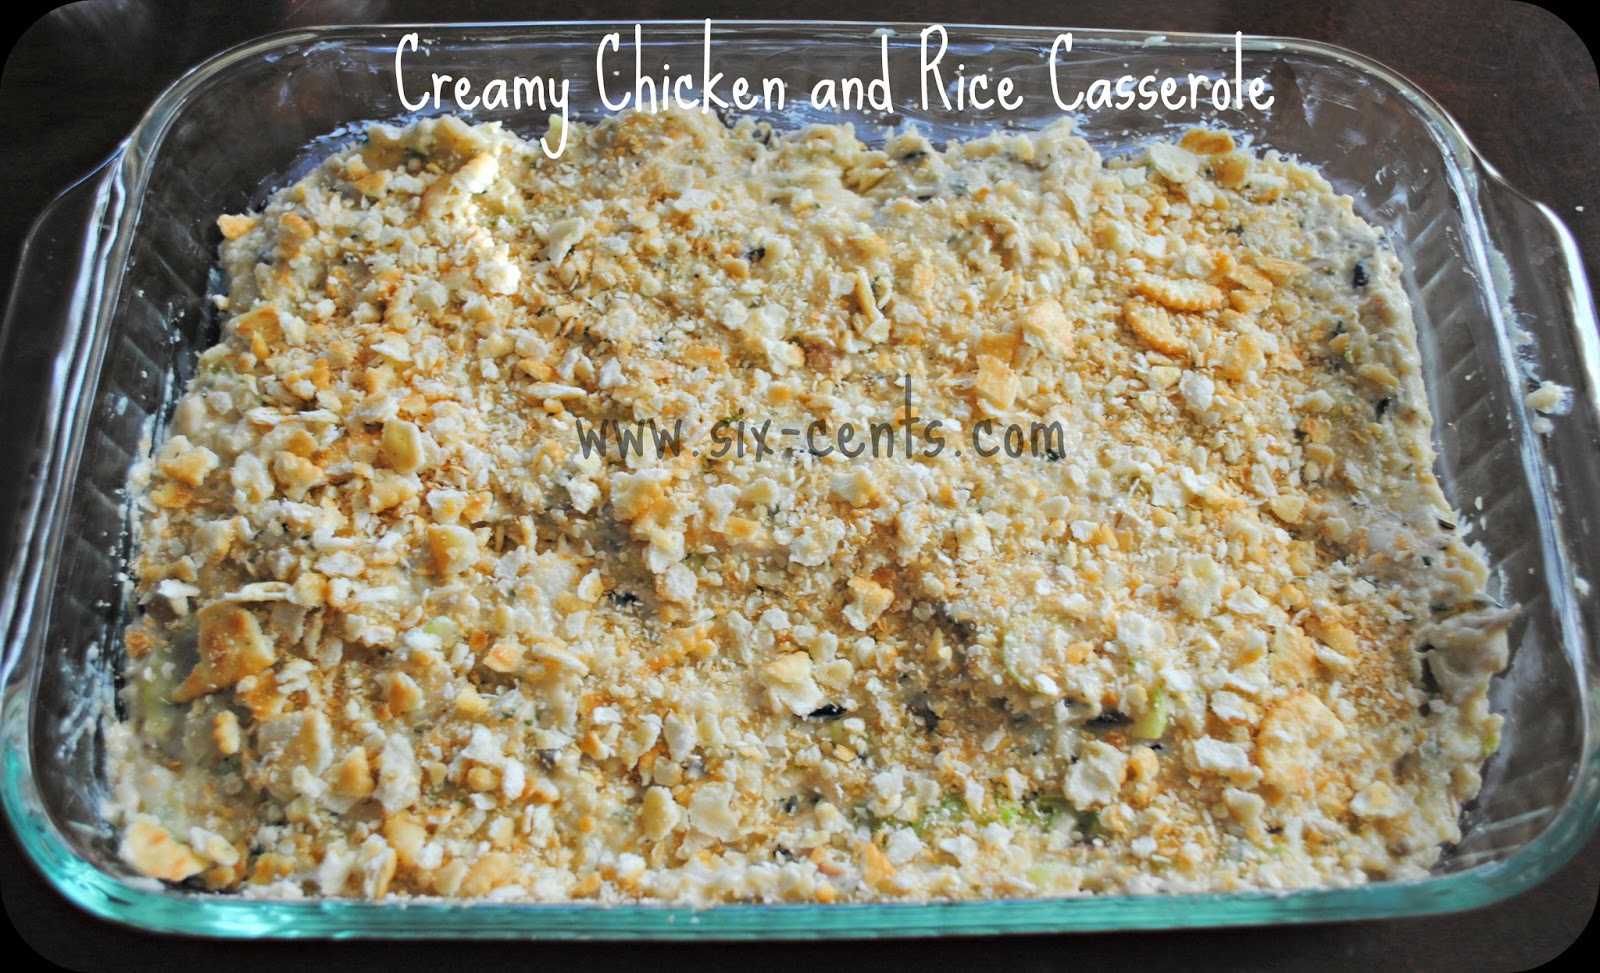 Six Cents: Creamy Chicken and Rice Casserole